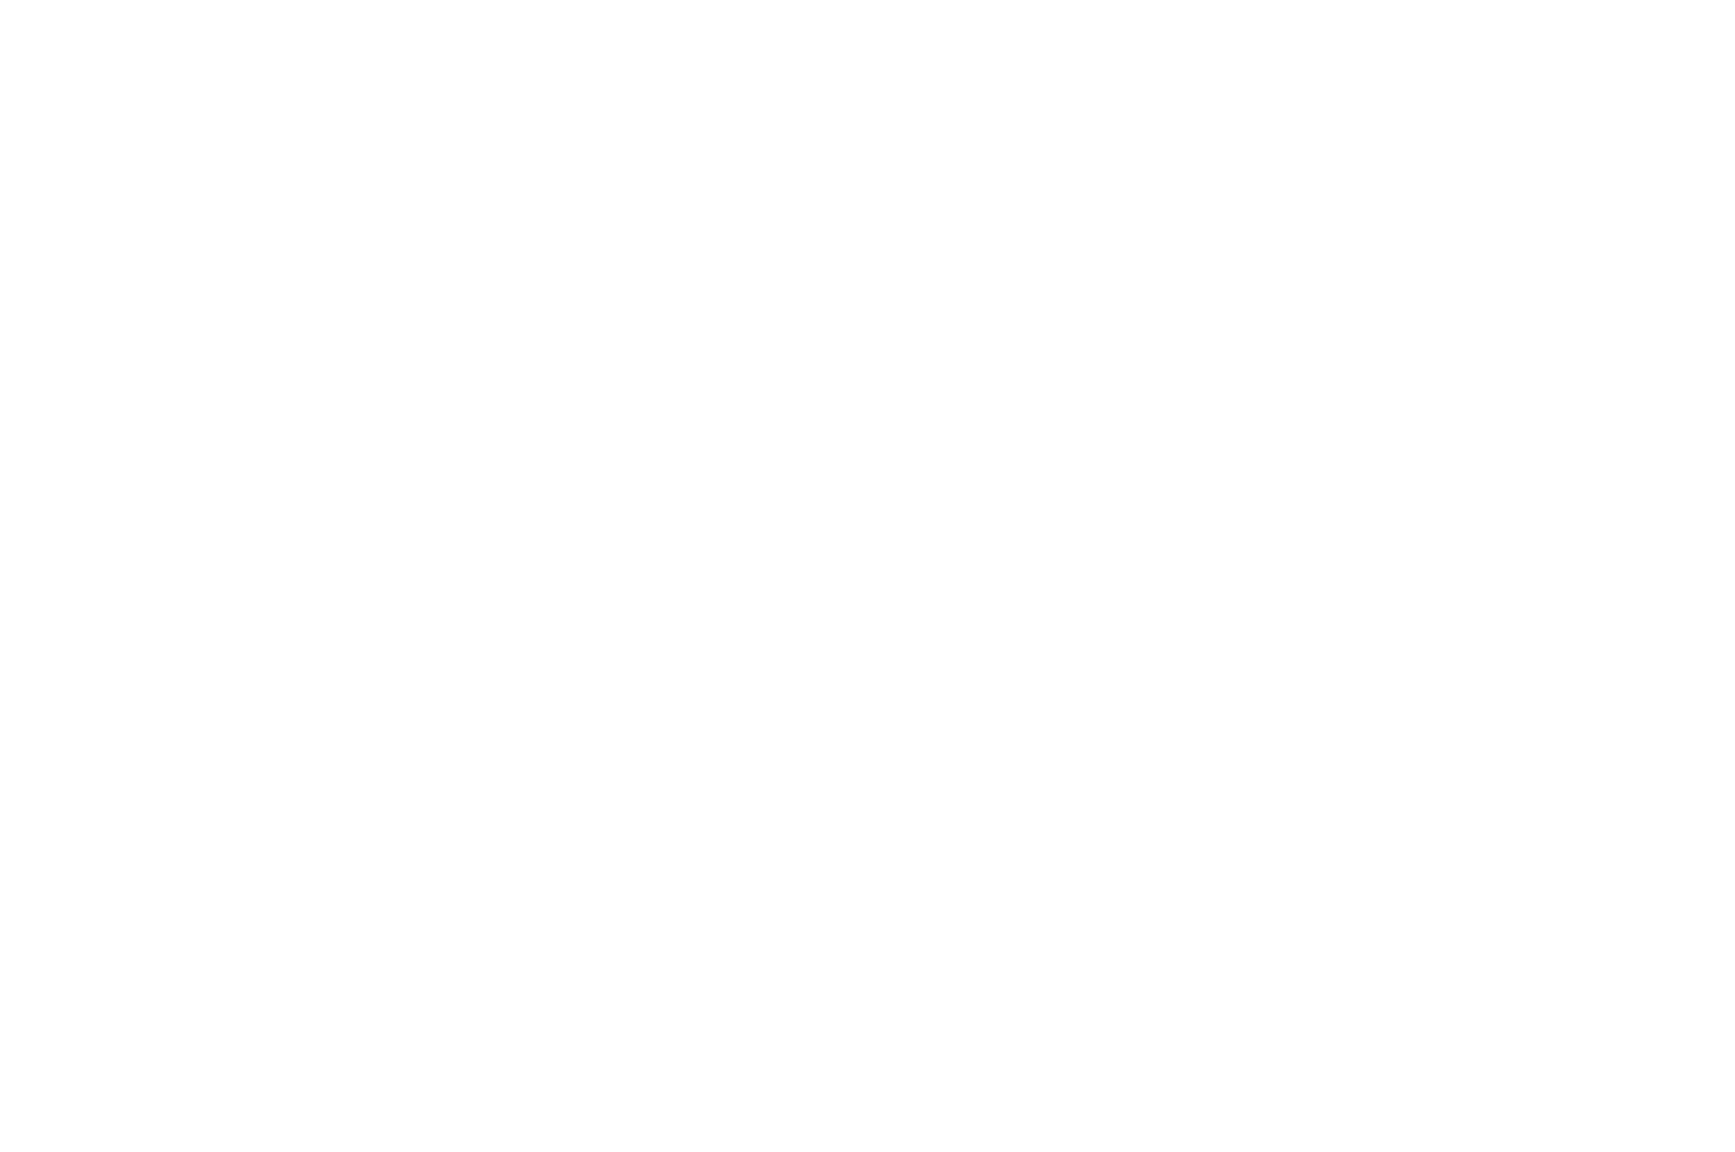 OFFICIAL SELECTION - Trail Dance Film Festival - 2012.png